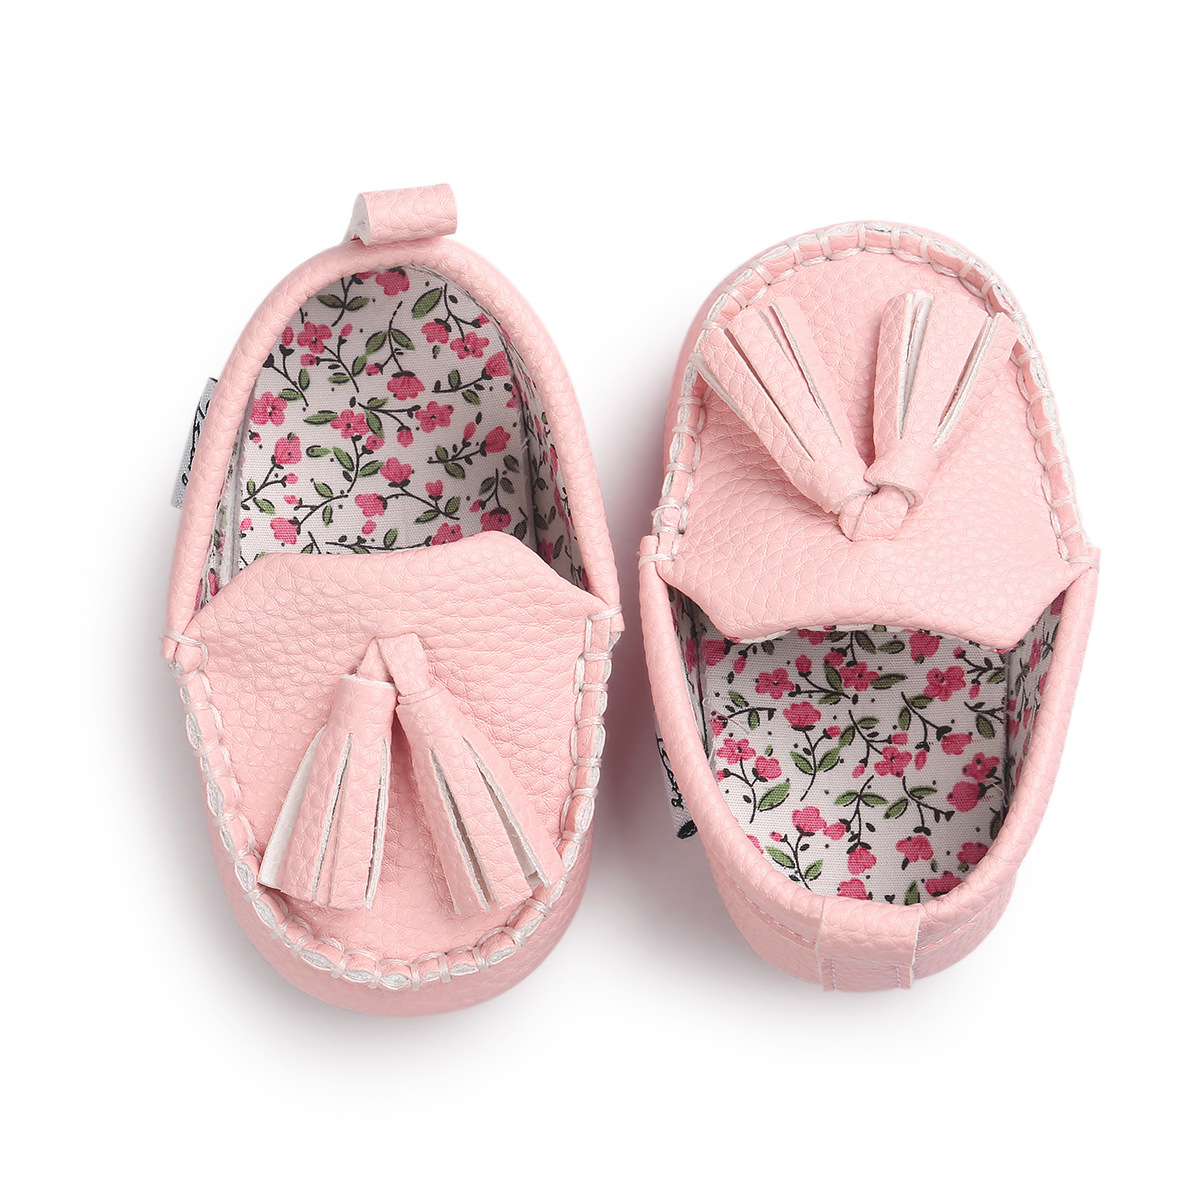 2017 ROMIRUS Tassel Moccasin Slippers Pu Leather Prewalkers Boots Tassels Baby Moccasin Newborn Babies Shoes Drop shipping